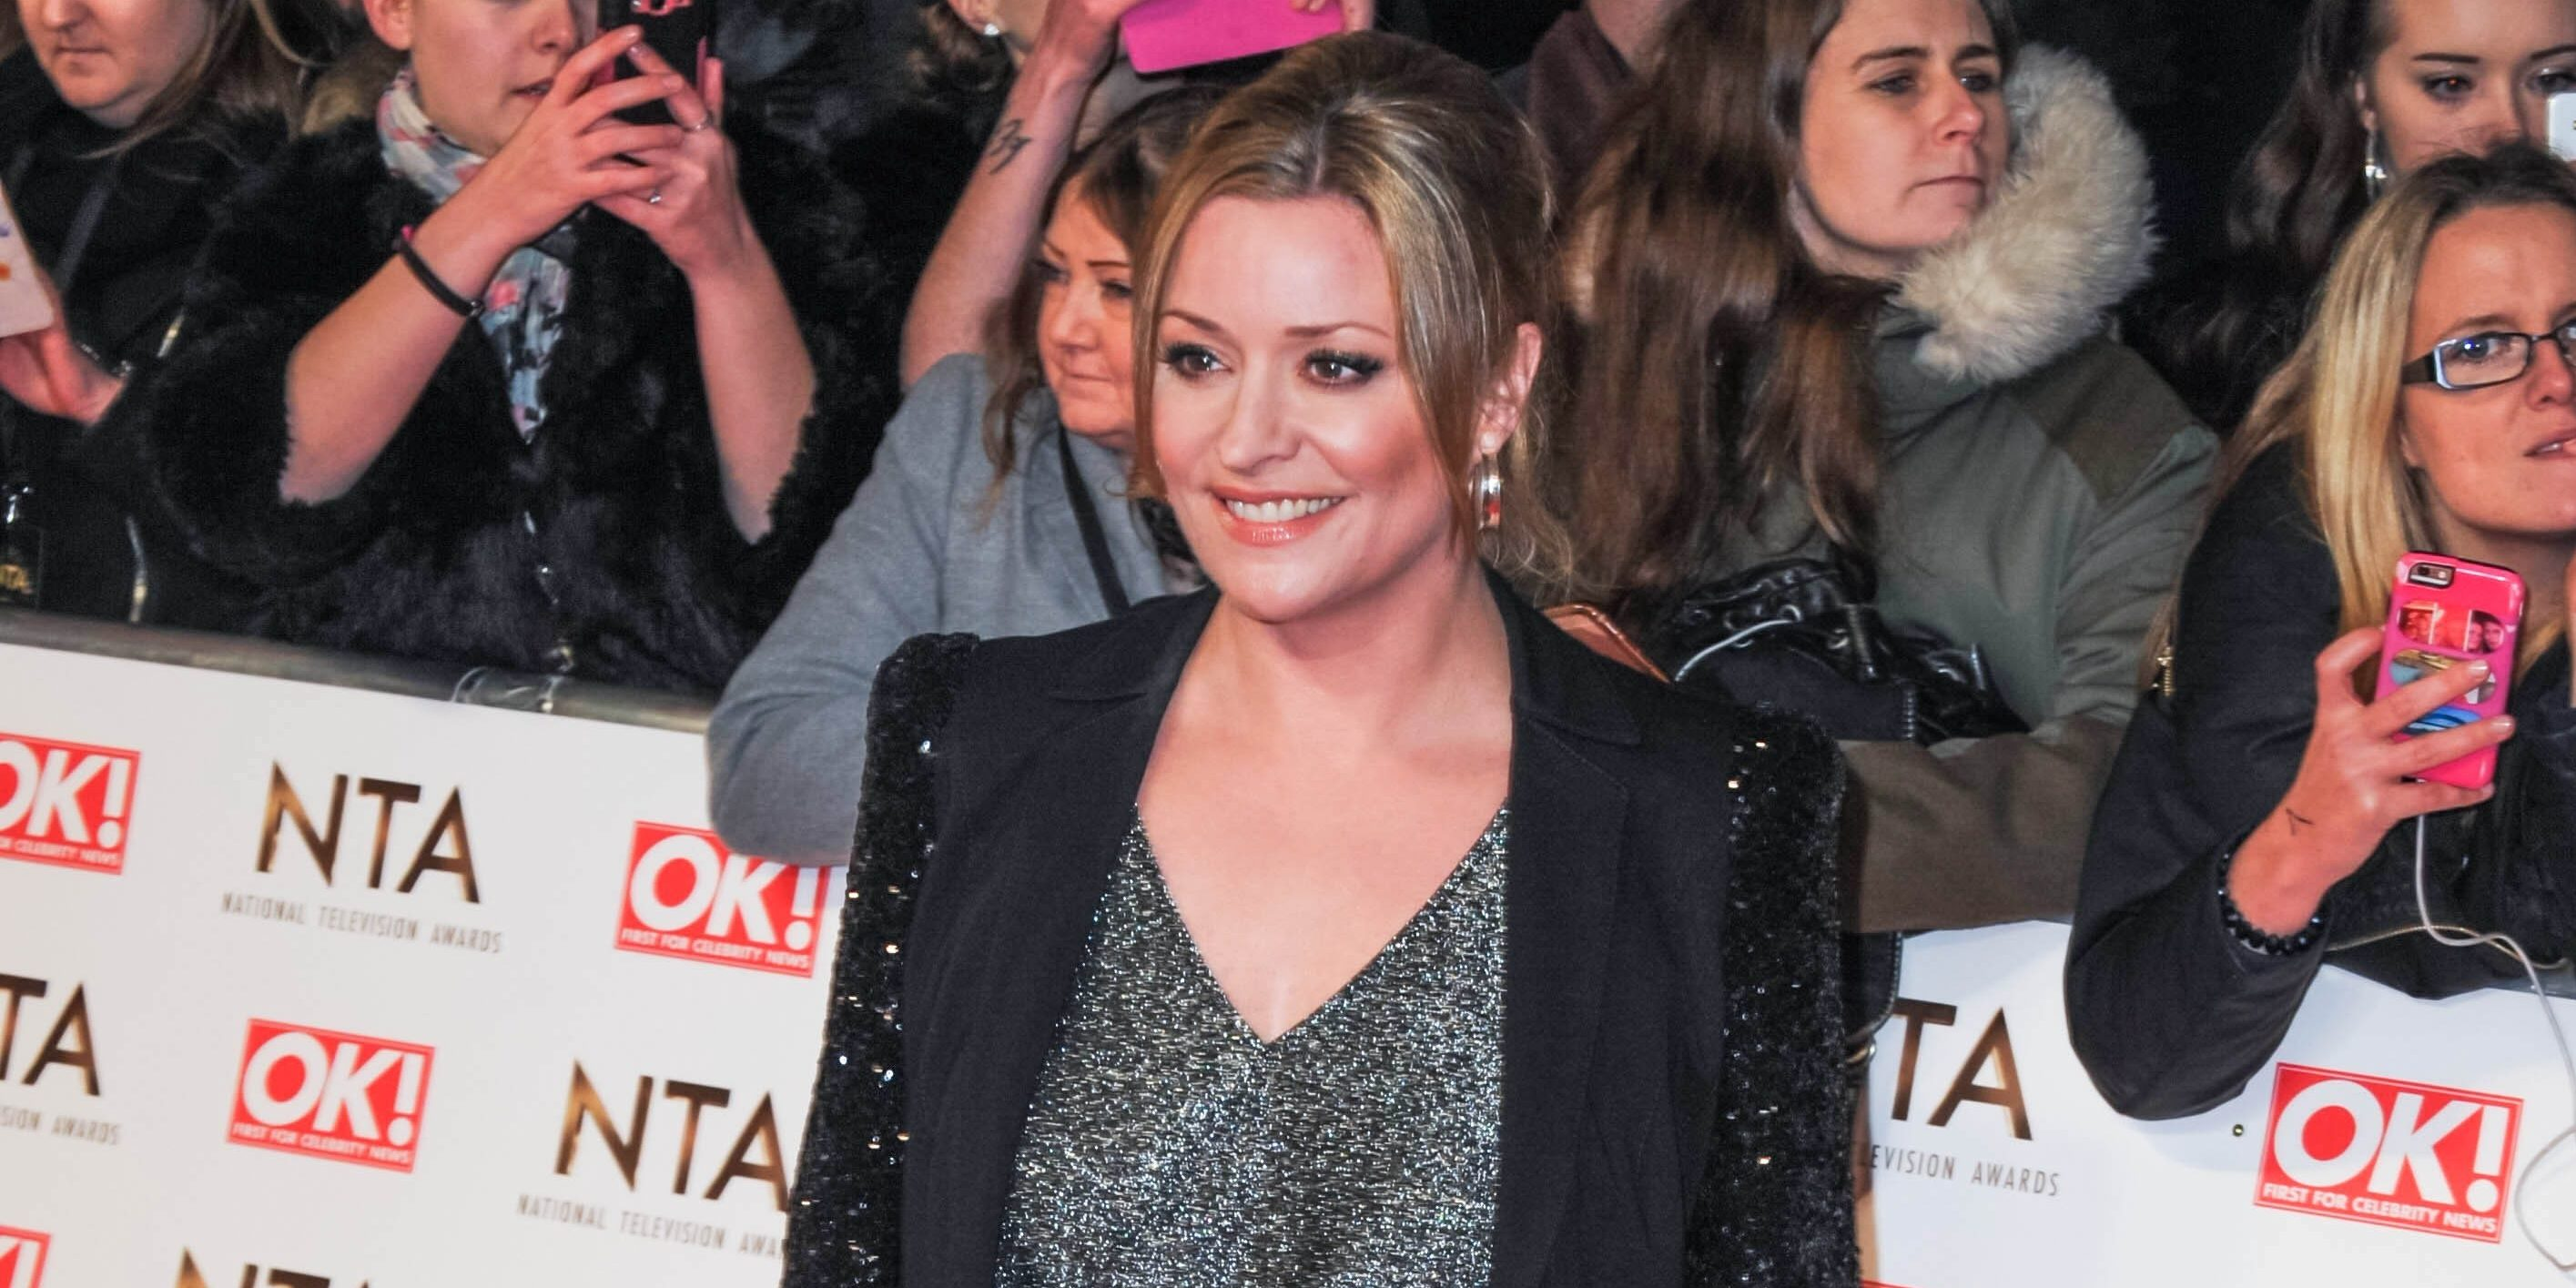 Former EastEnders star Laurie Brett says she has 'no plans' to return to soap